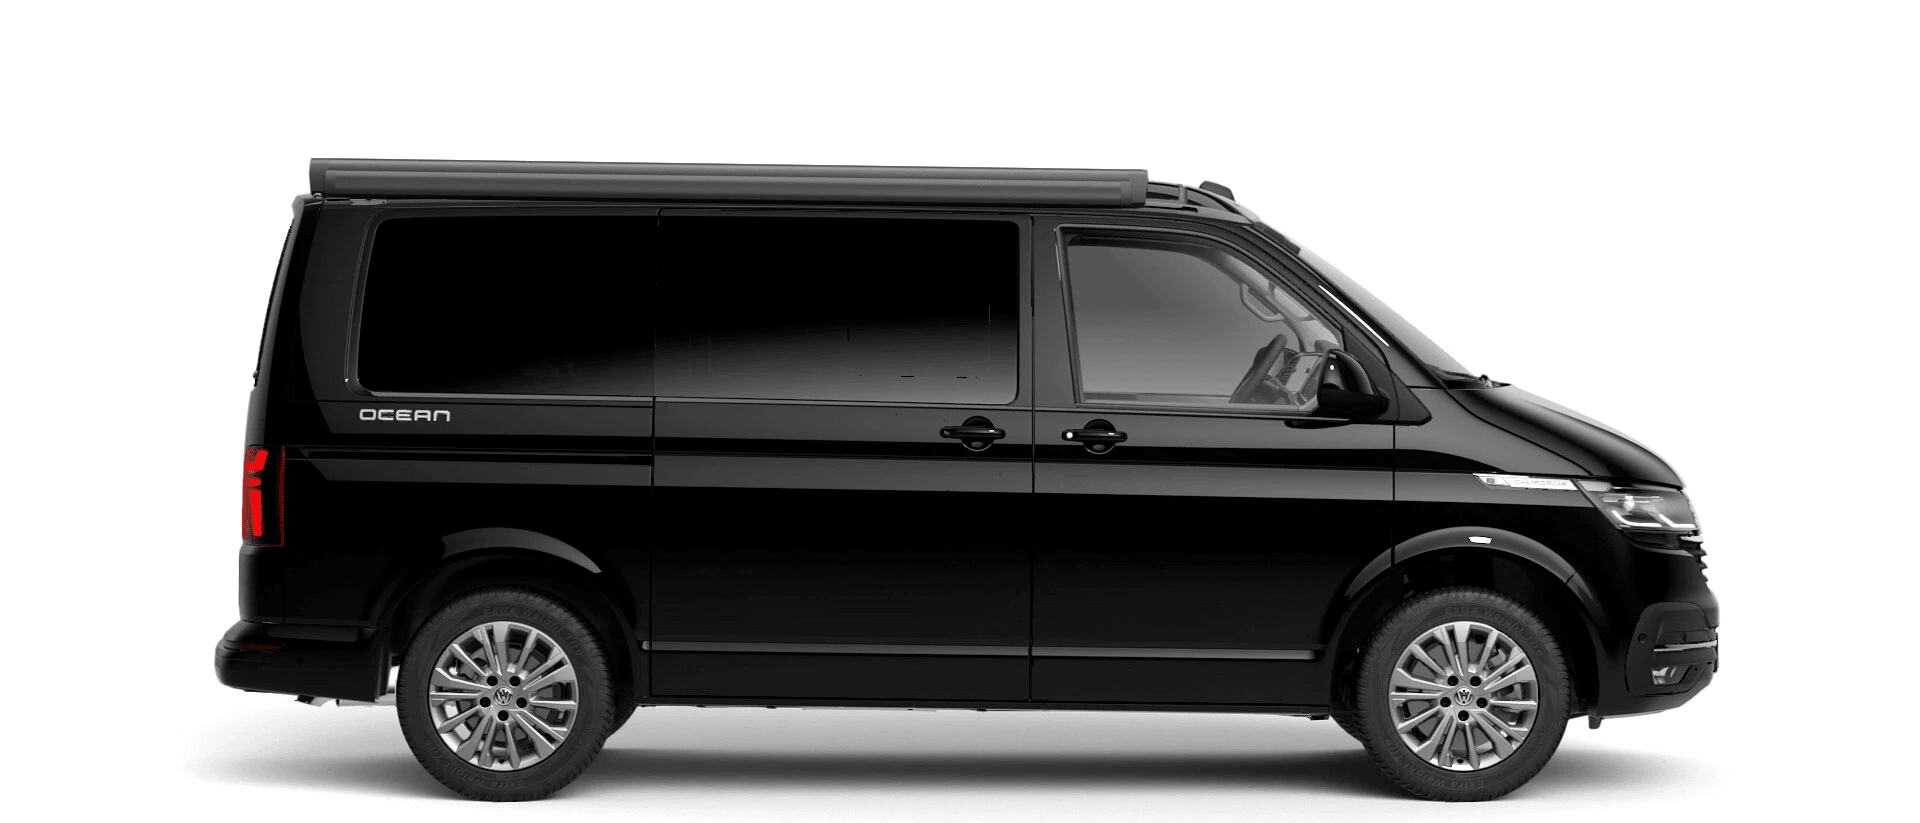 Volkswagen Van Range California - Available In Pearl Deep Black